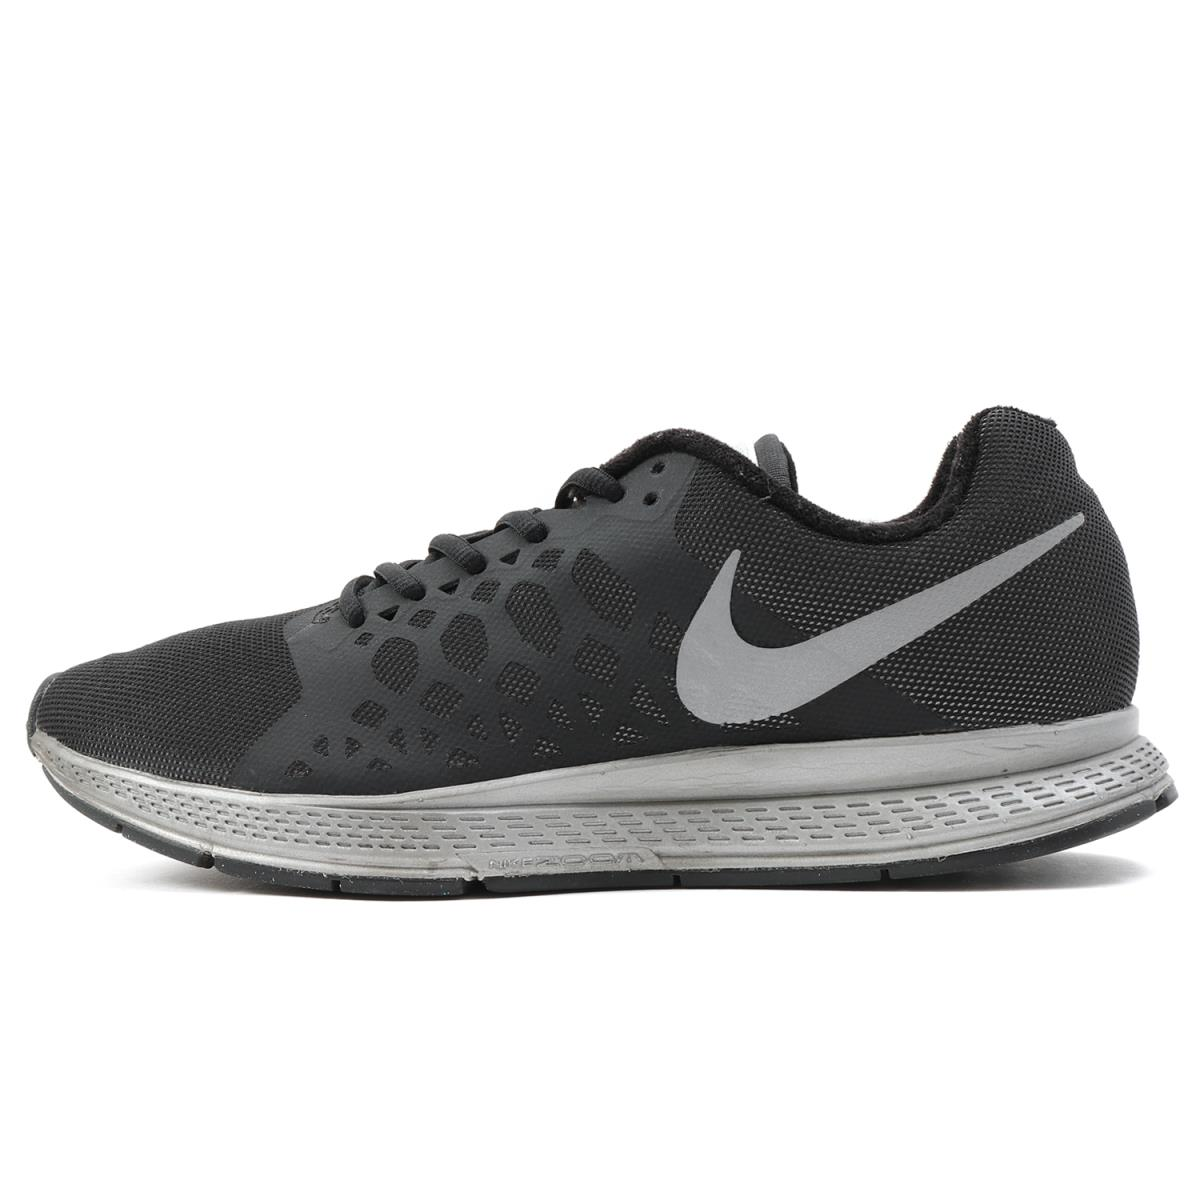 93db0456bd9f BEEGLE by Boo-Bee  NIKE (Nike) ZOOM PEGASUS 31 FLASH (683